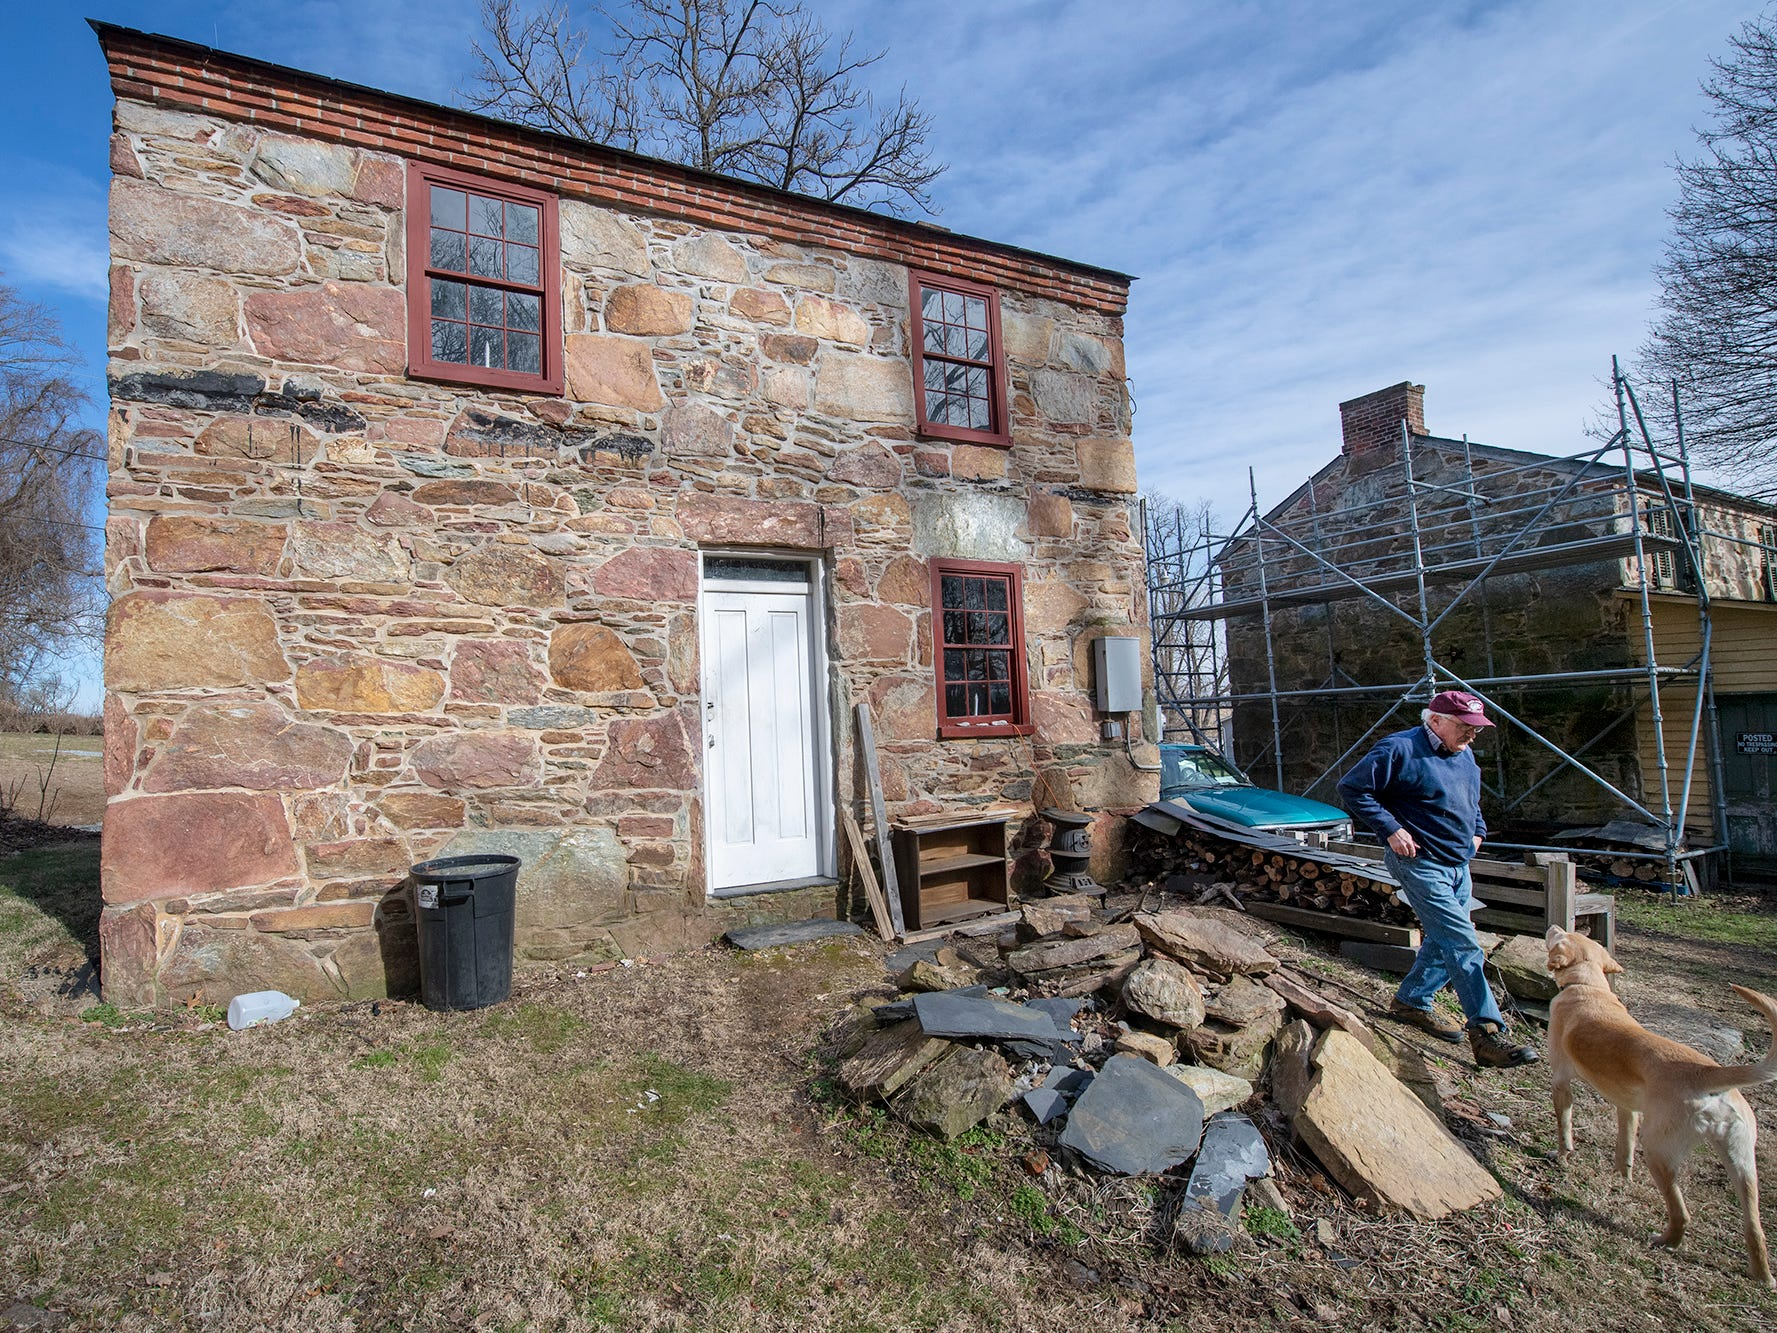 This is the rear of one of the Welsh quarrymen's cottages that was purchased in 2006 with Old Line Museum volunteer Don Robinson and his dog Jake in Peach Bottom Township on February 19, 2019. The cottage at right was stabilized with scaffolding so one wall can eventually be repaired.